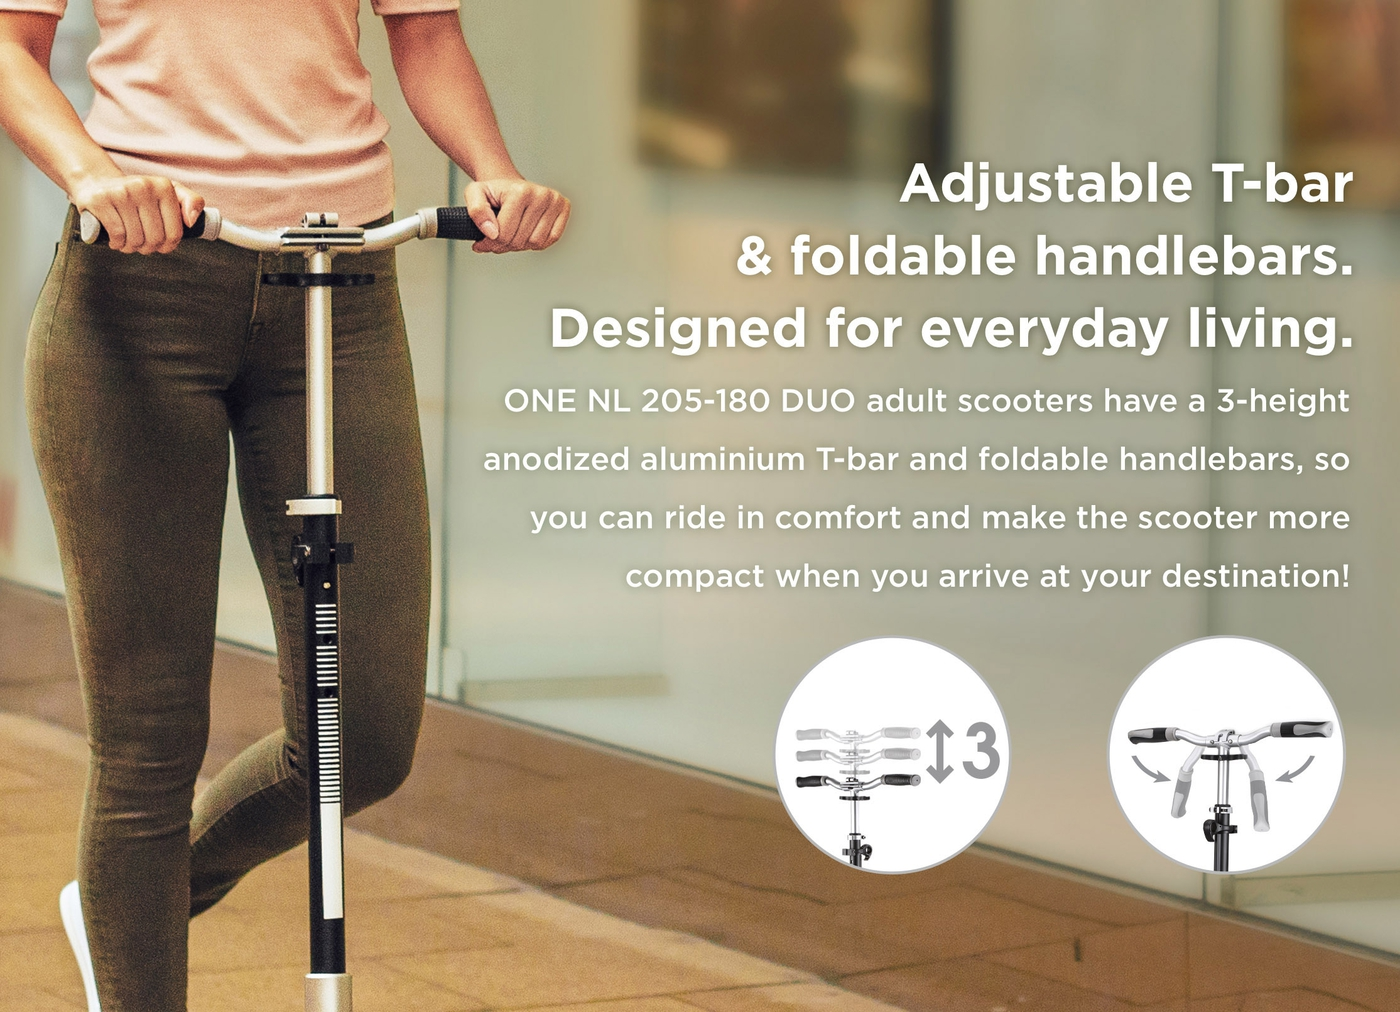 Adjustable T-bar & foldable handlebars. Designed for everyday living.